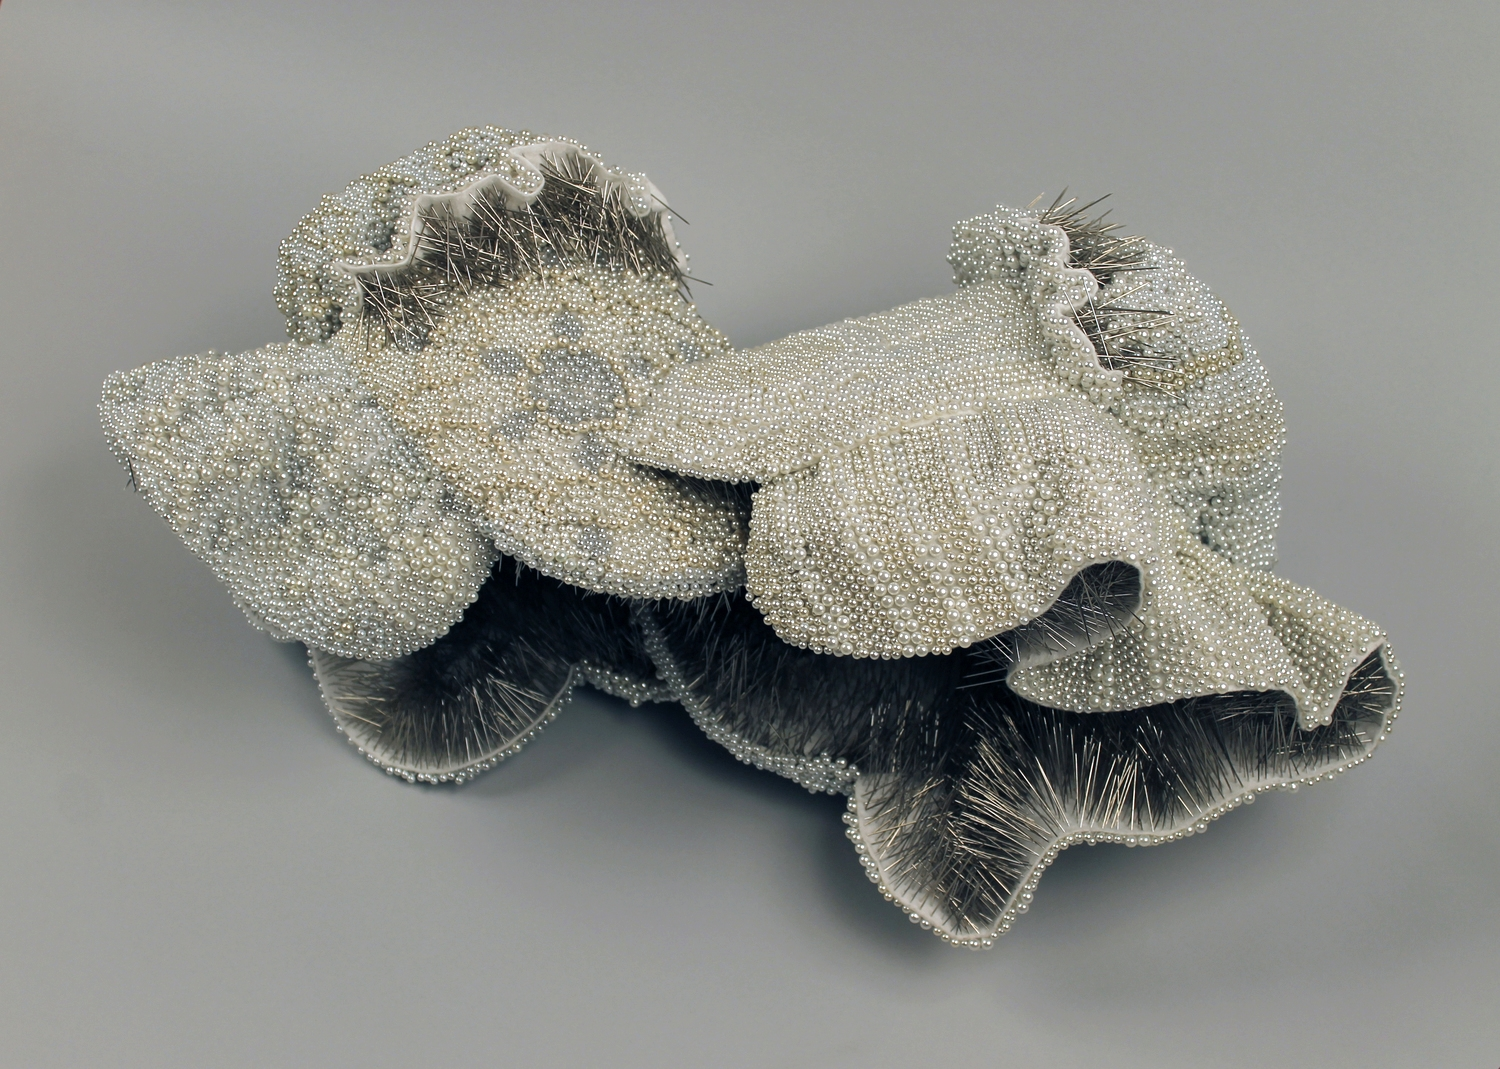 """Close to You, 25,747pearl corsage pins, fabric, steel, 12"""" x 24"""" x 13"""", 2013-2014"""